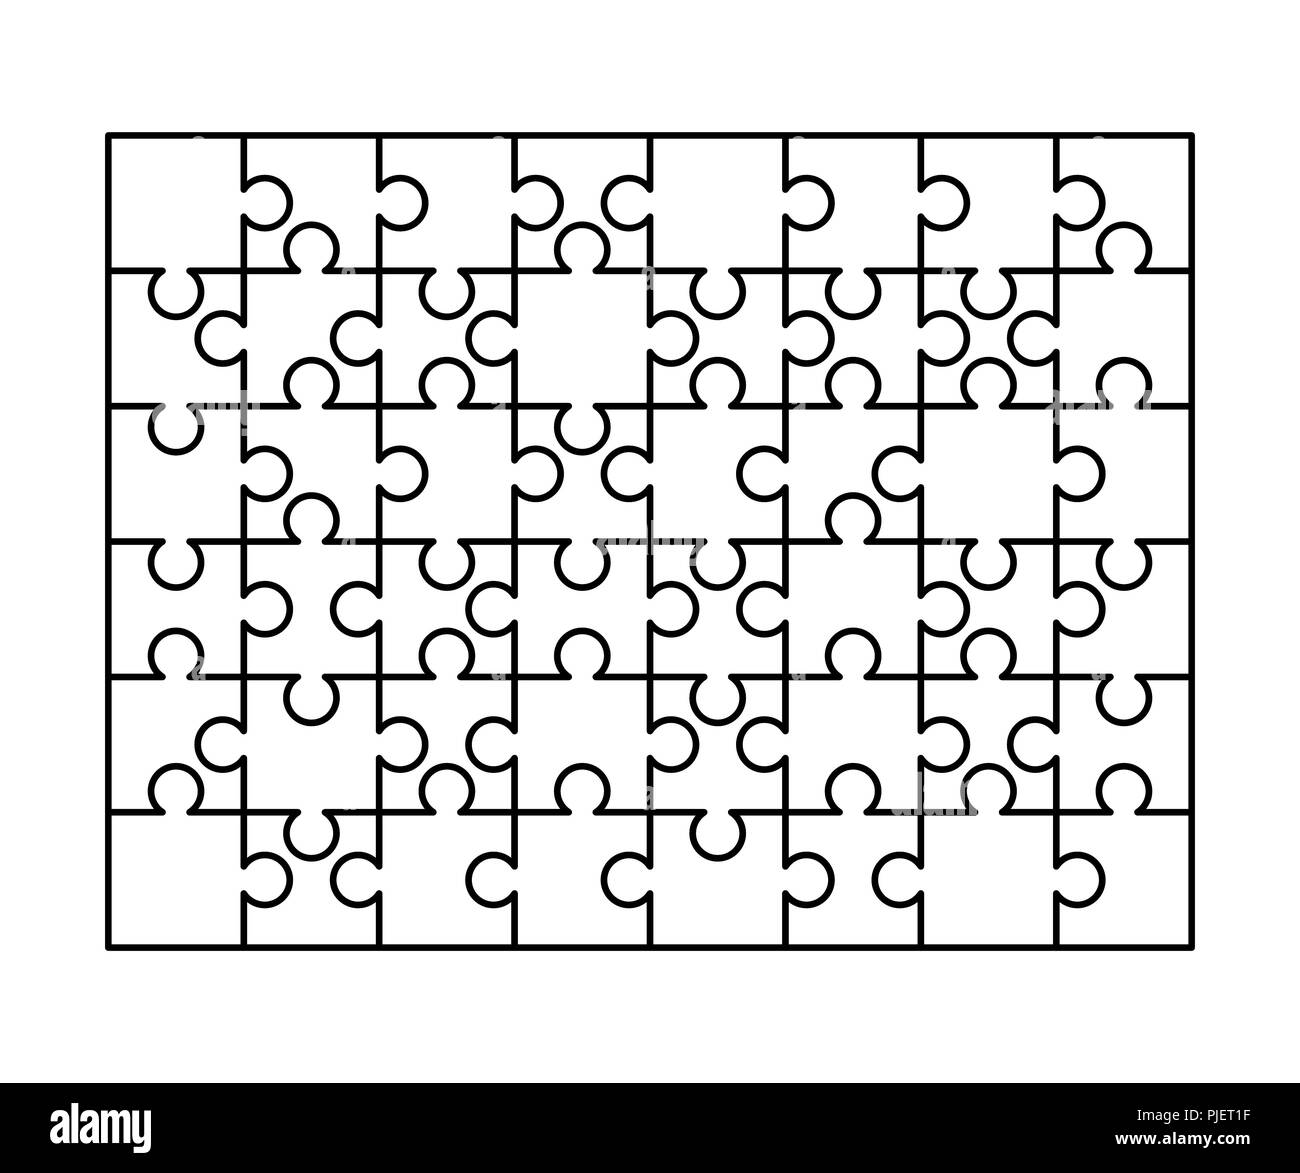 48 White Puzzles Pieces Arranged In A Rectangle Shape Jigsaw Puzzle